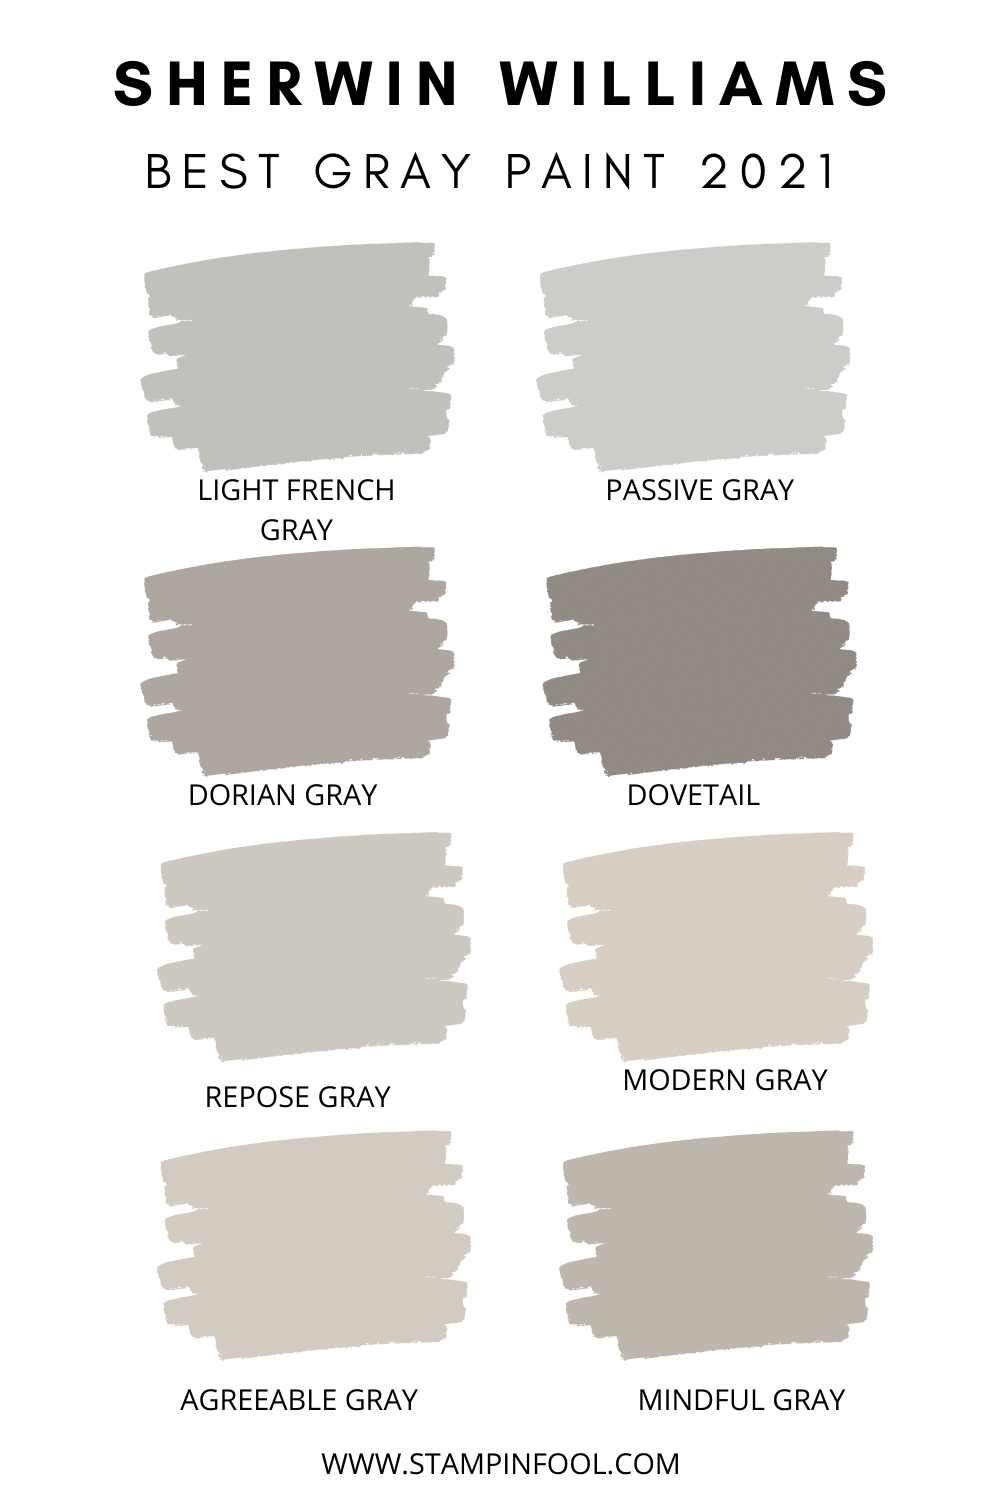 Best Sherwin Williams Gray Paint Colors of 2020